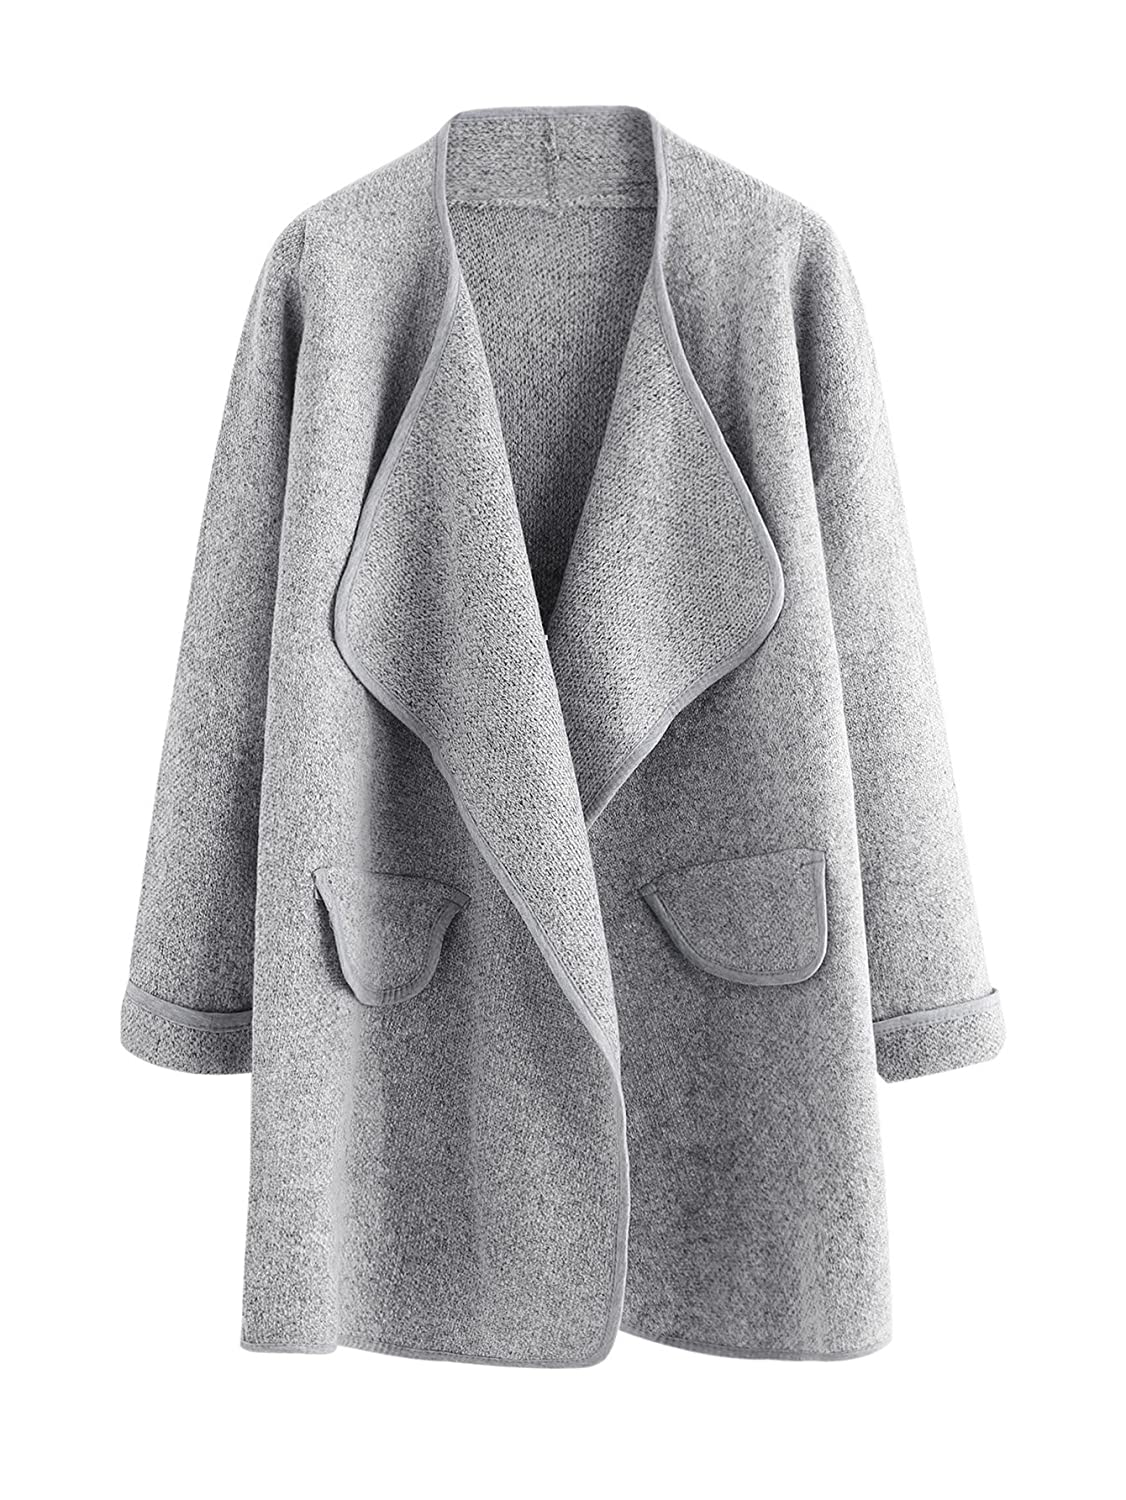 KUBITU Womens Shawl Collar Pocket Open Front Wool Long Cardigan ...